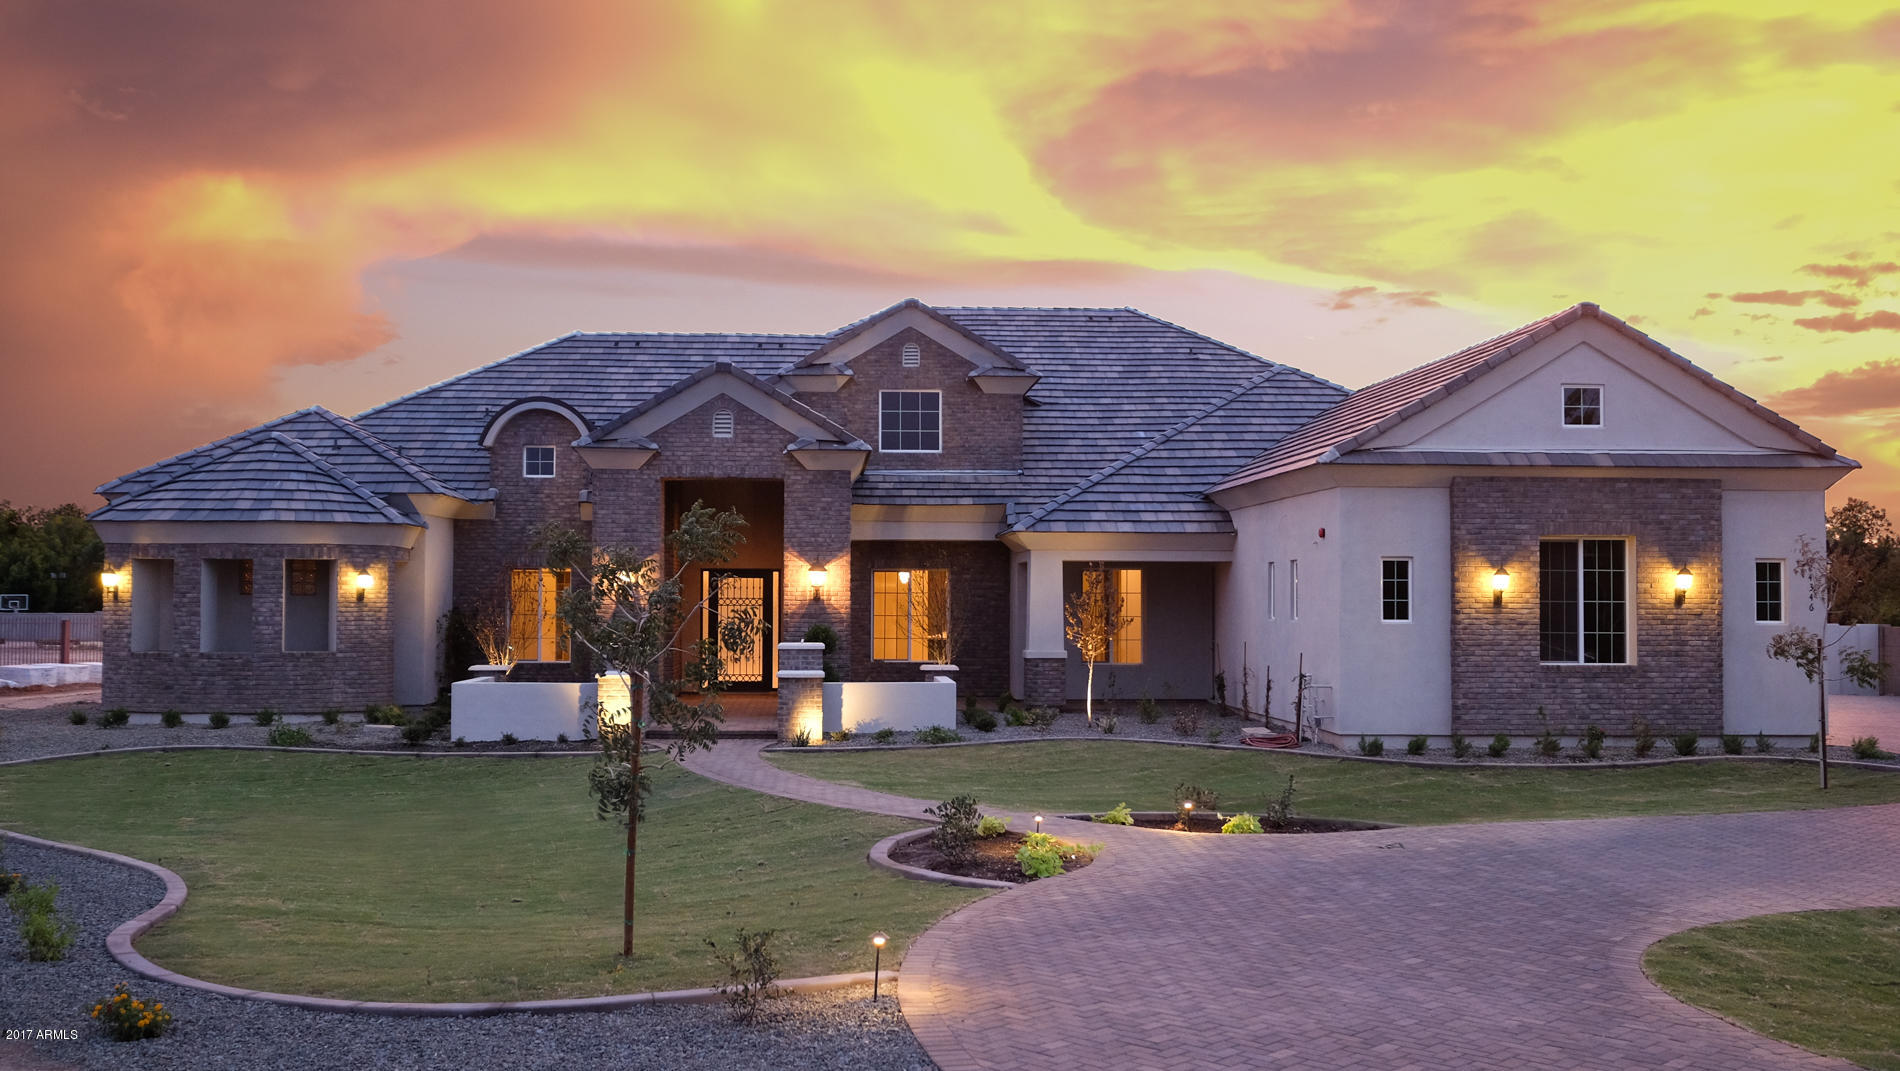 Simple Saving Tips To Purchase Your Dream Home In a Year!